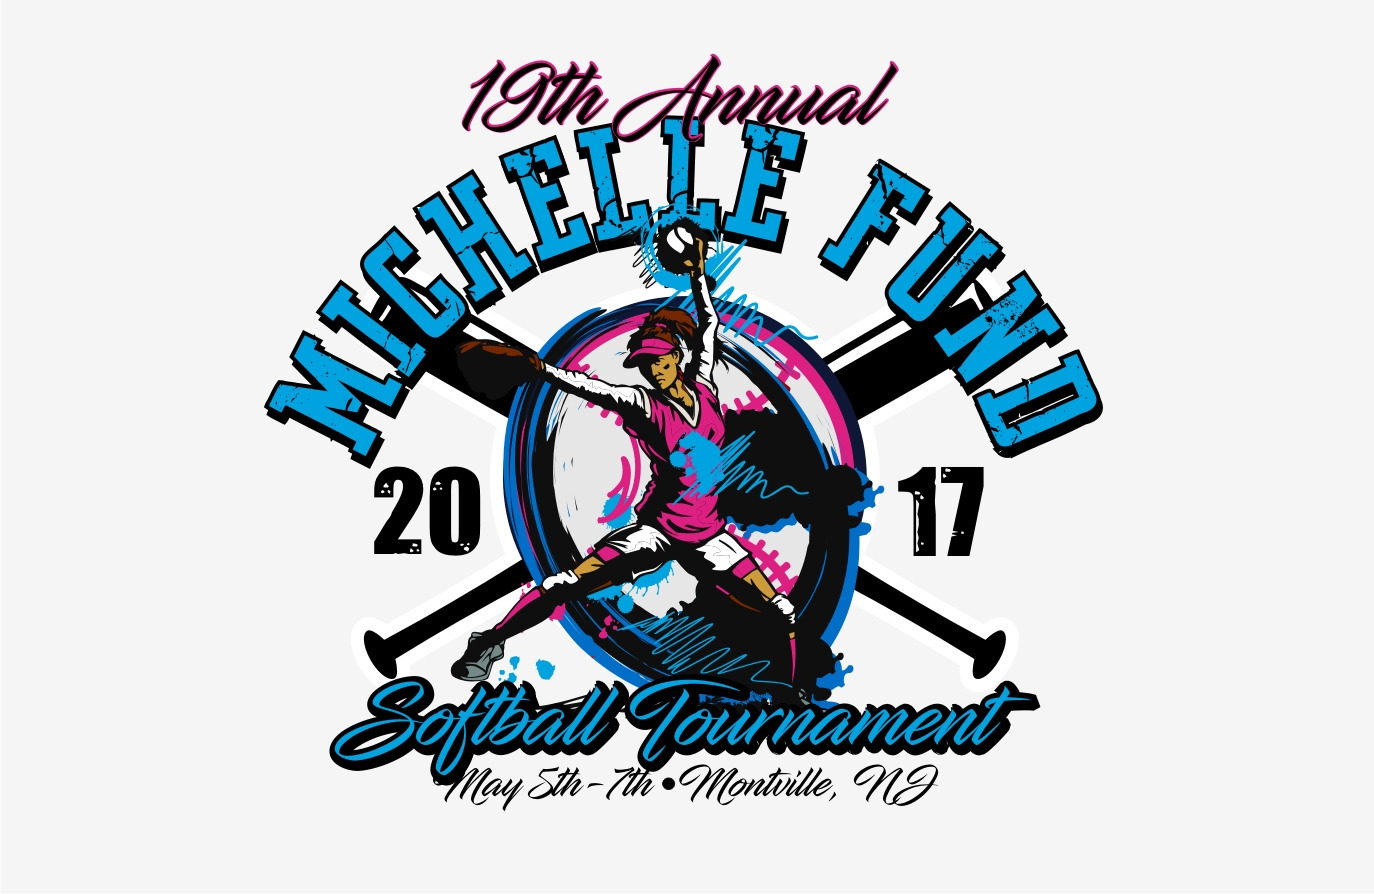 Michelle Fund Softball Tournament 2017